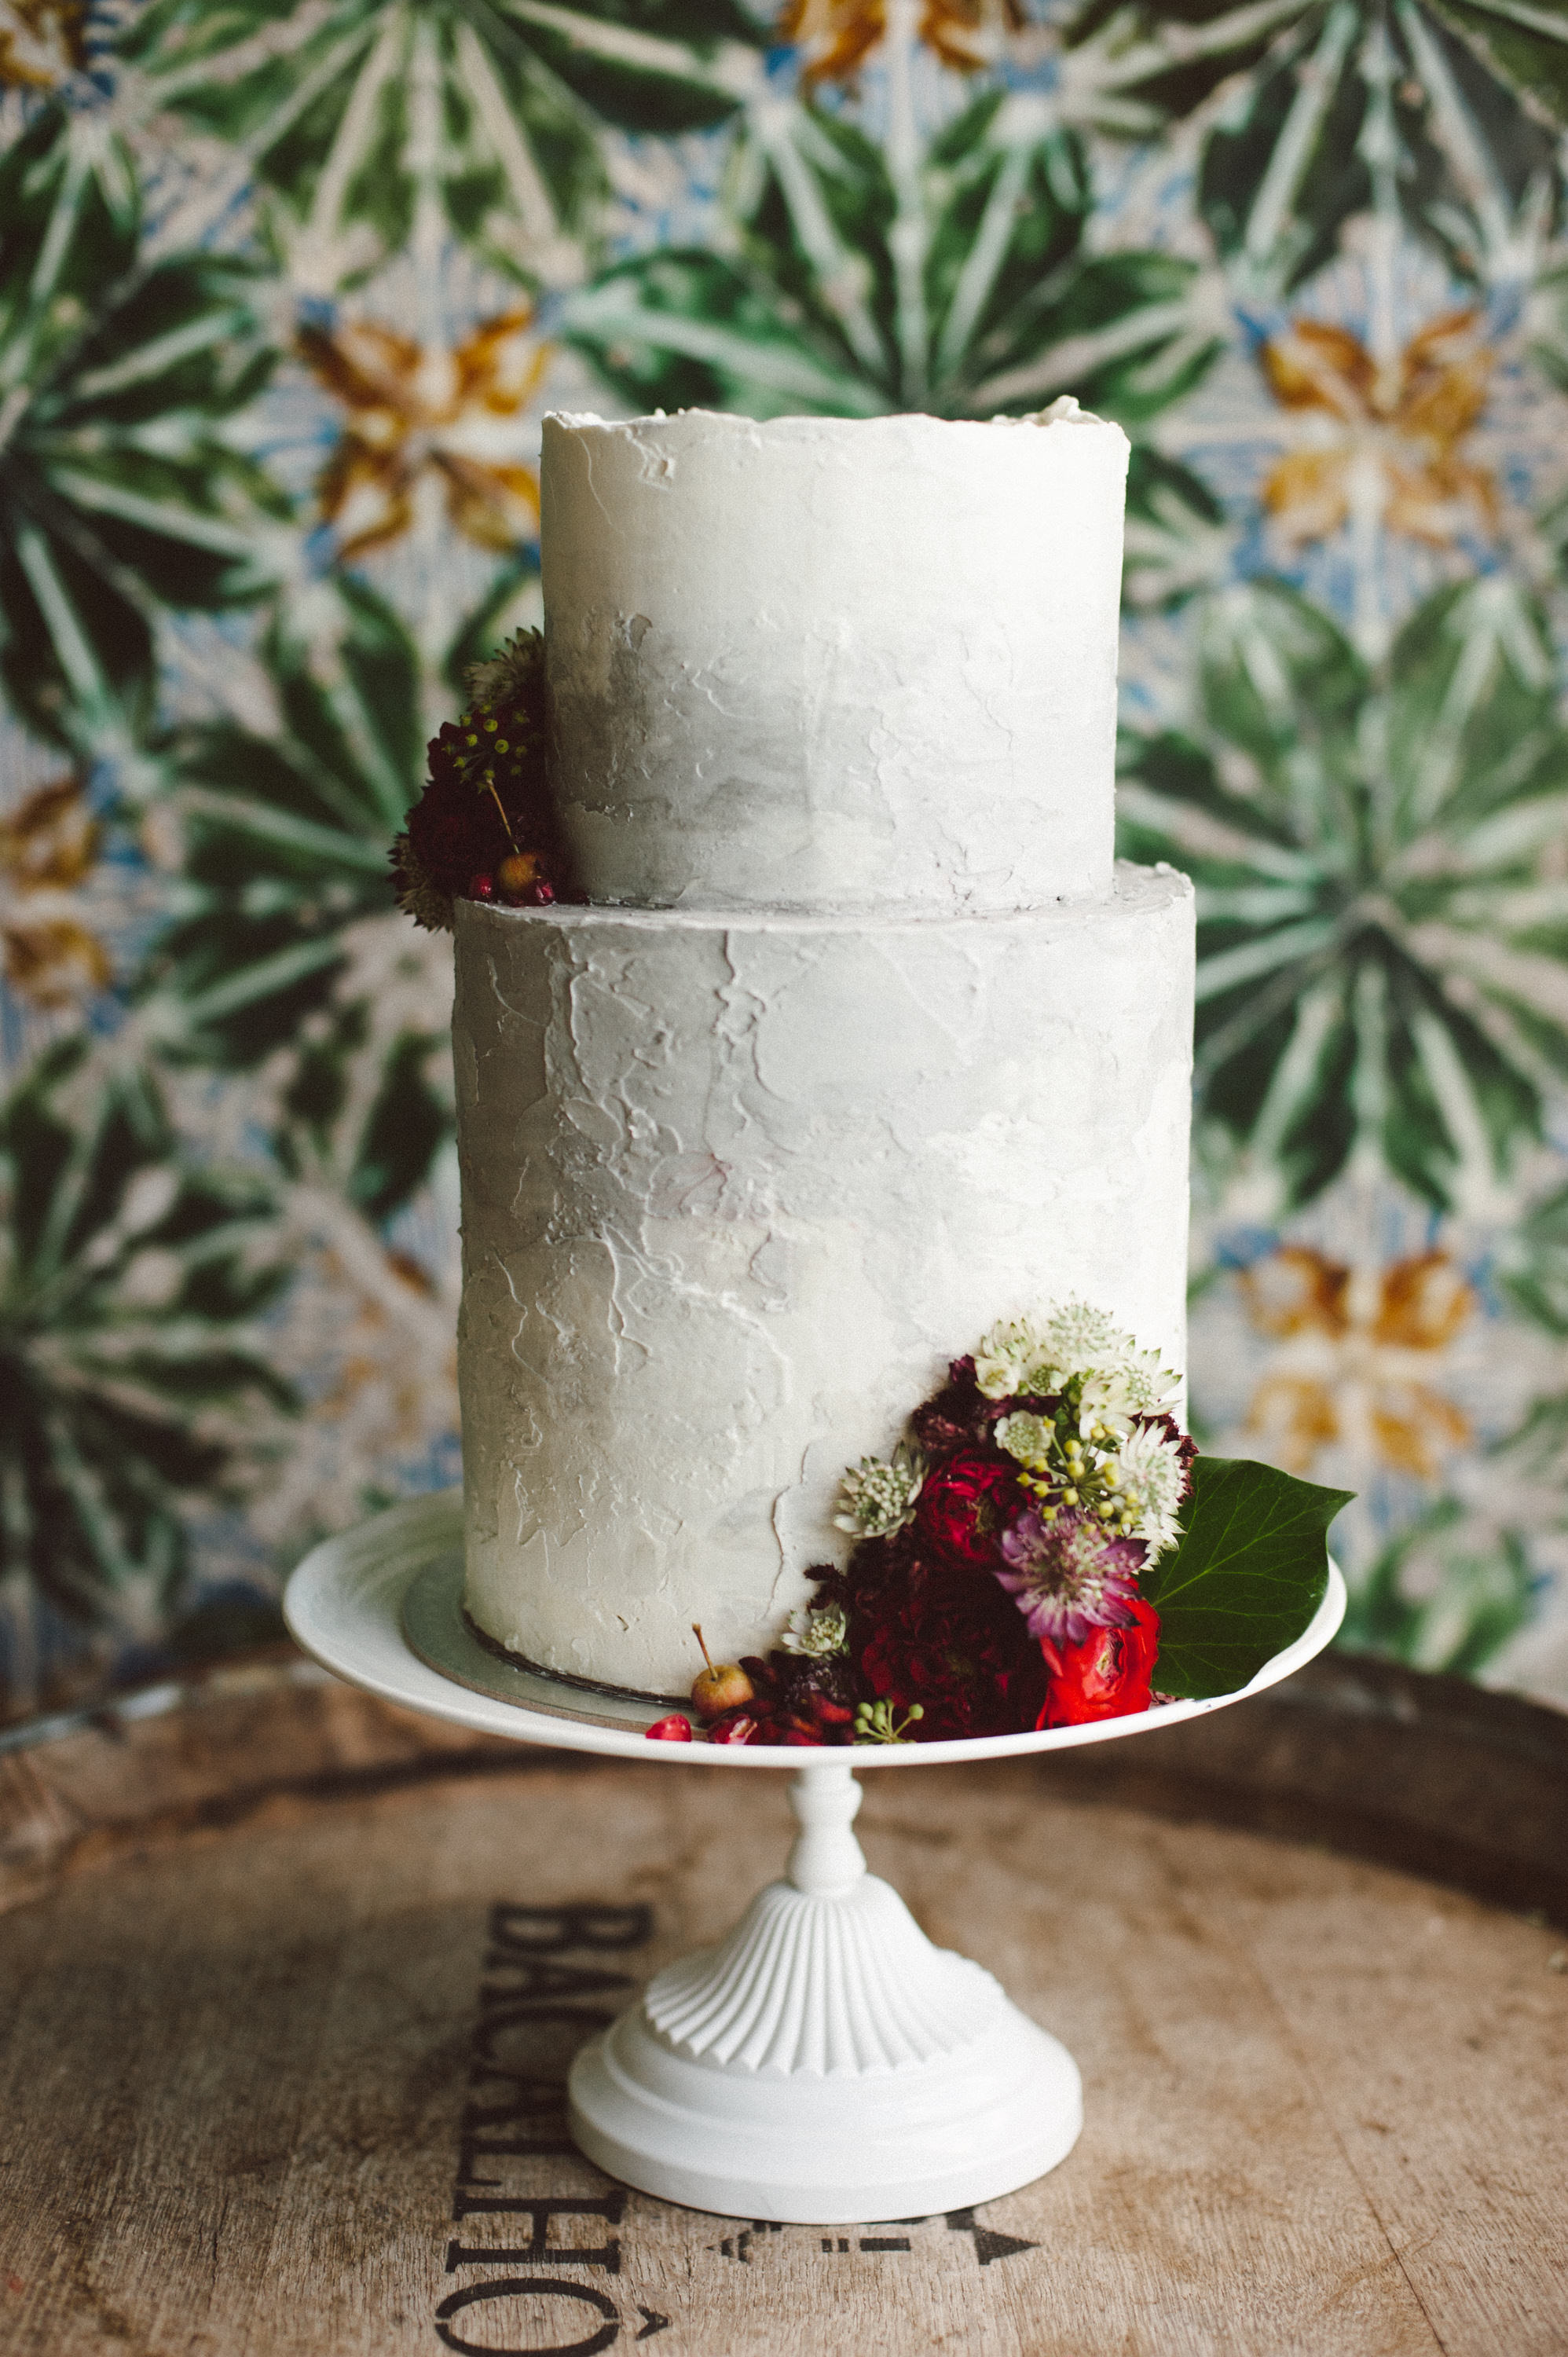 Marbled Wedding Cake with Deckled Edges